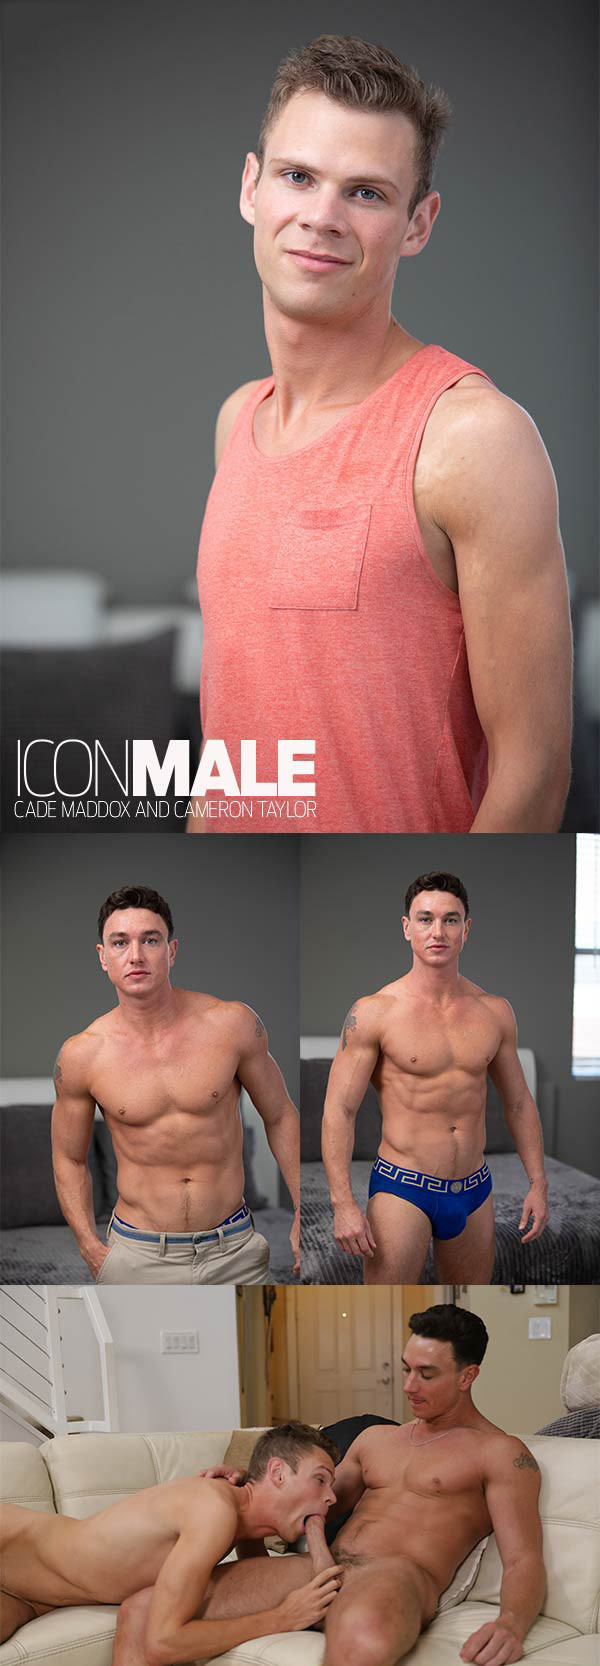 IconMale Truth Is Cade Maddox Cameron Taylor